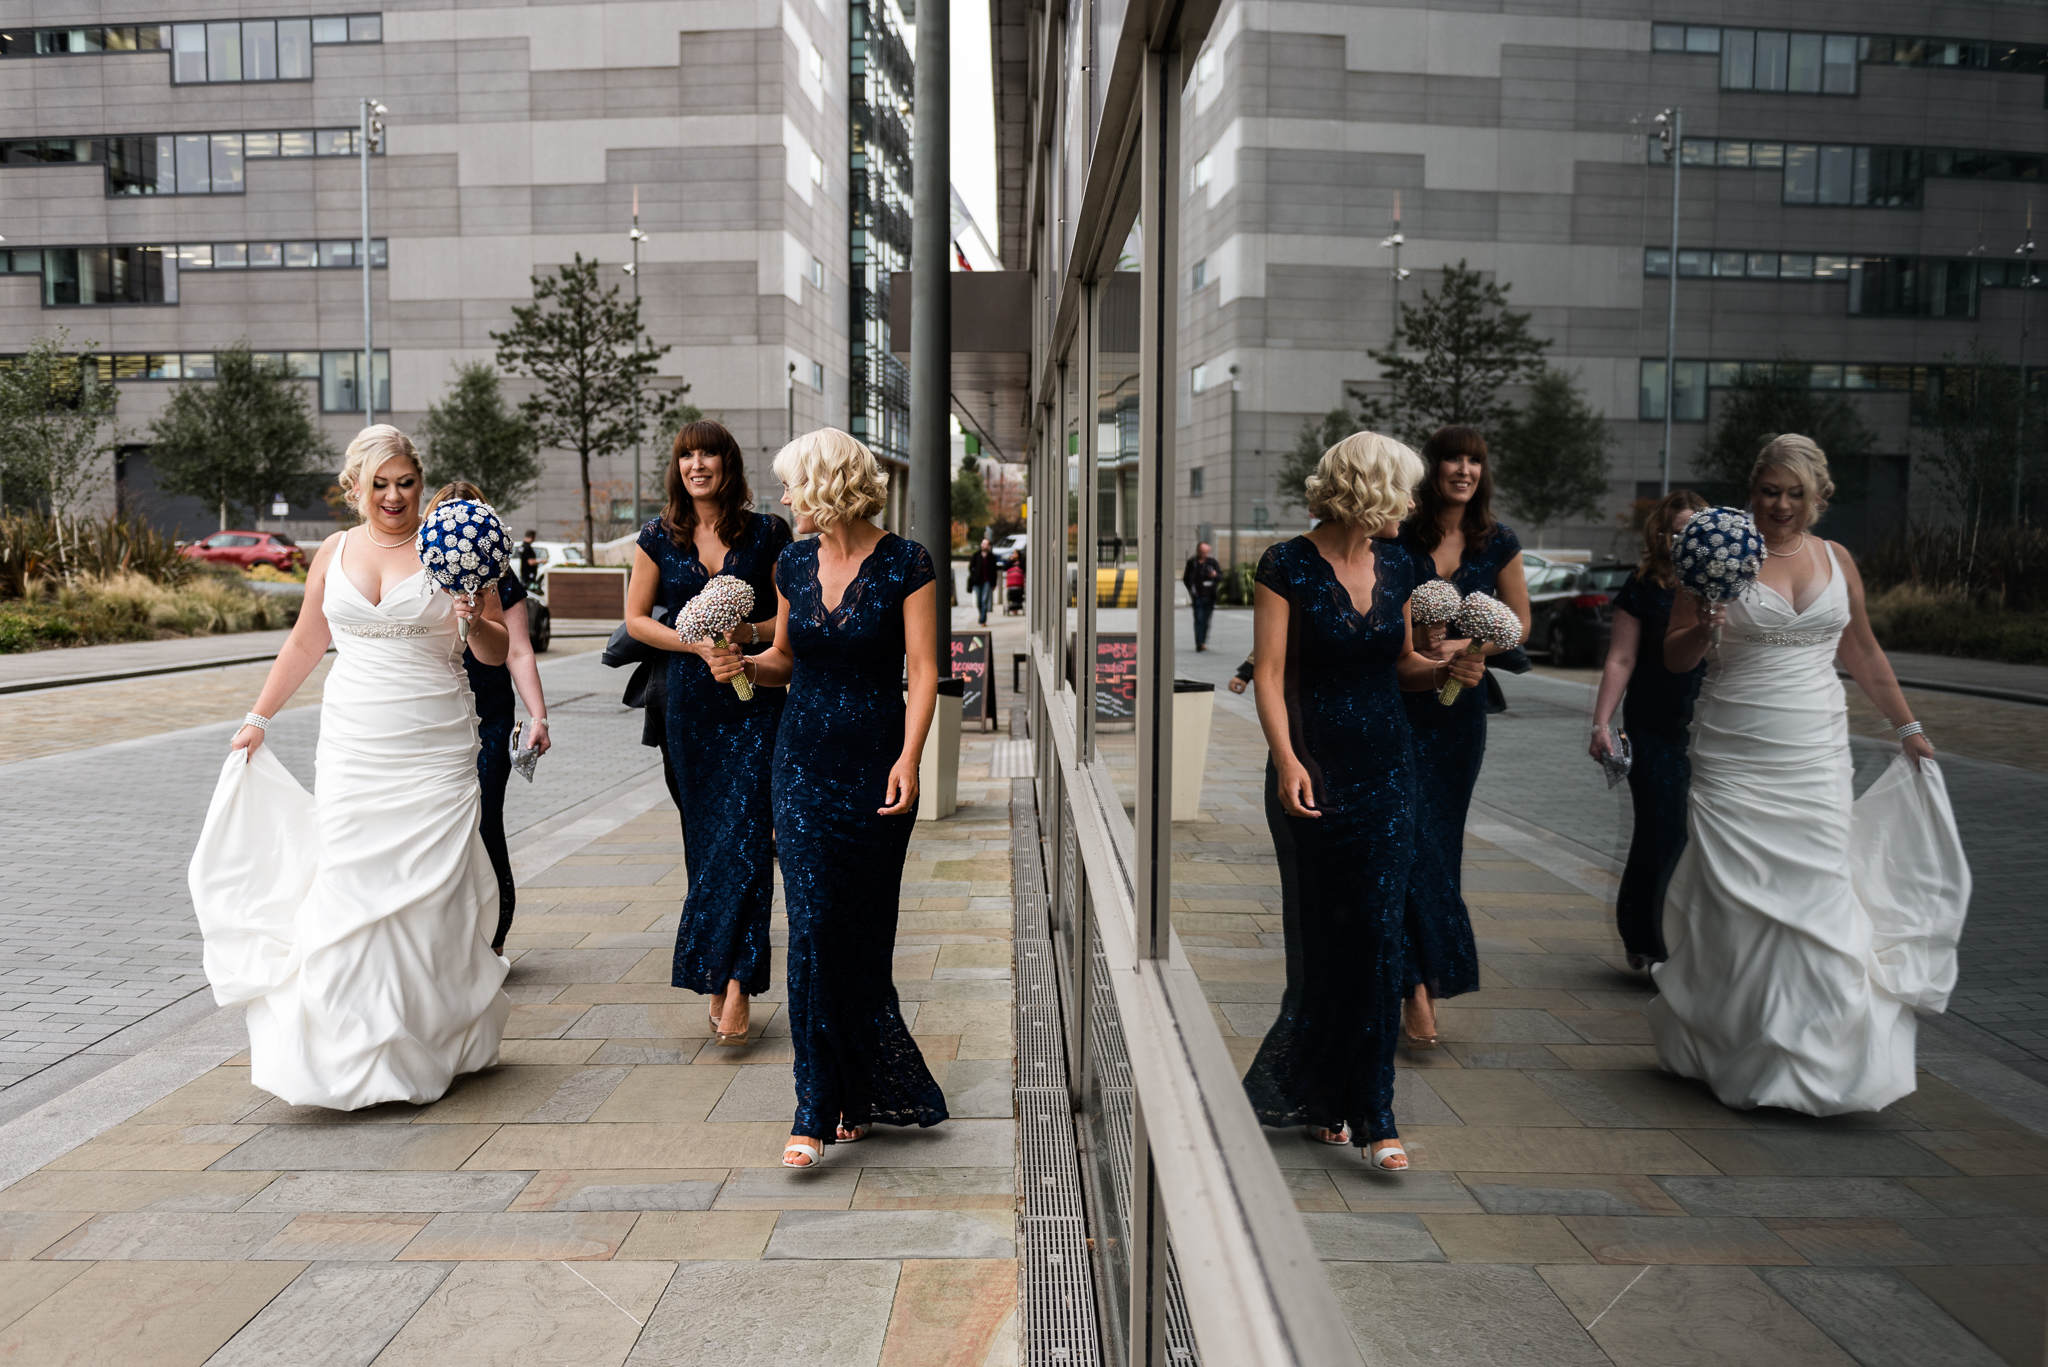 Manchester Wedding Photography On the 7th Media City UK, Salford 20s Art Deco Feathers Urban - Jenny Harper-14.jpg